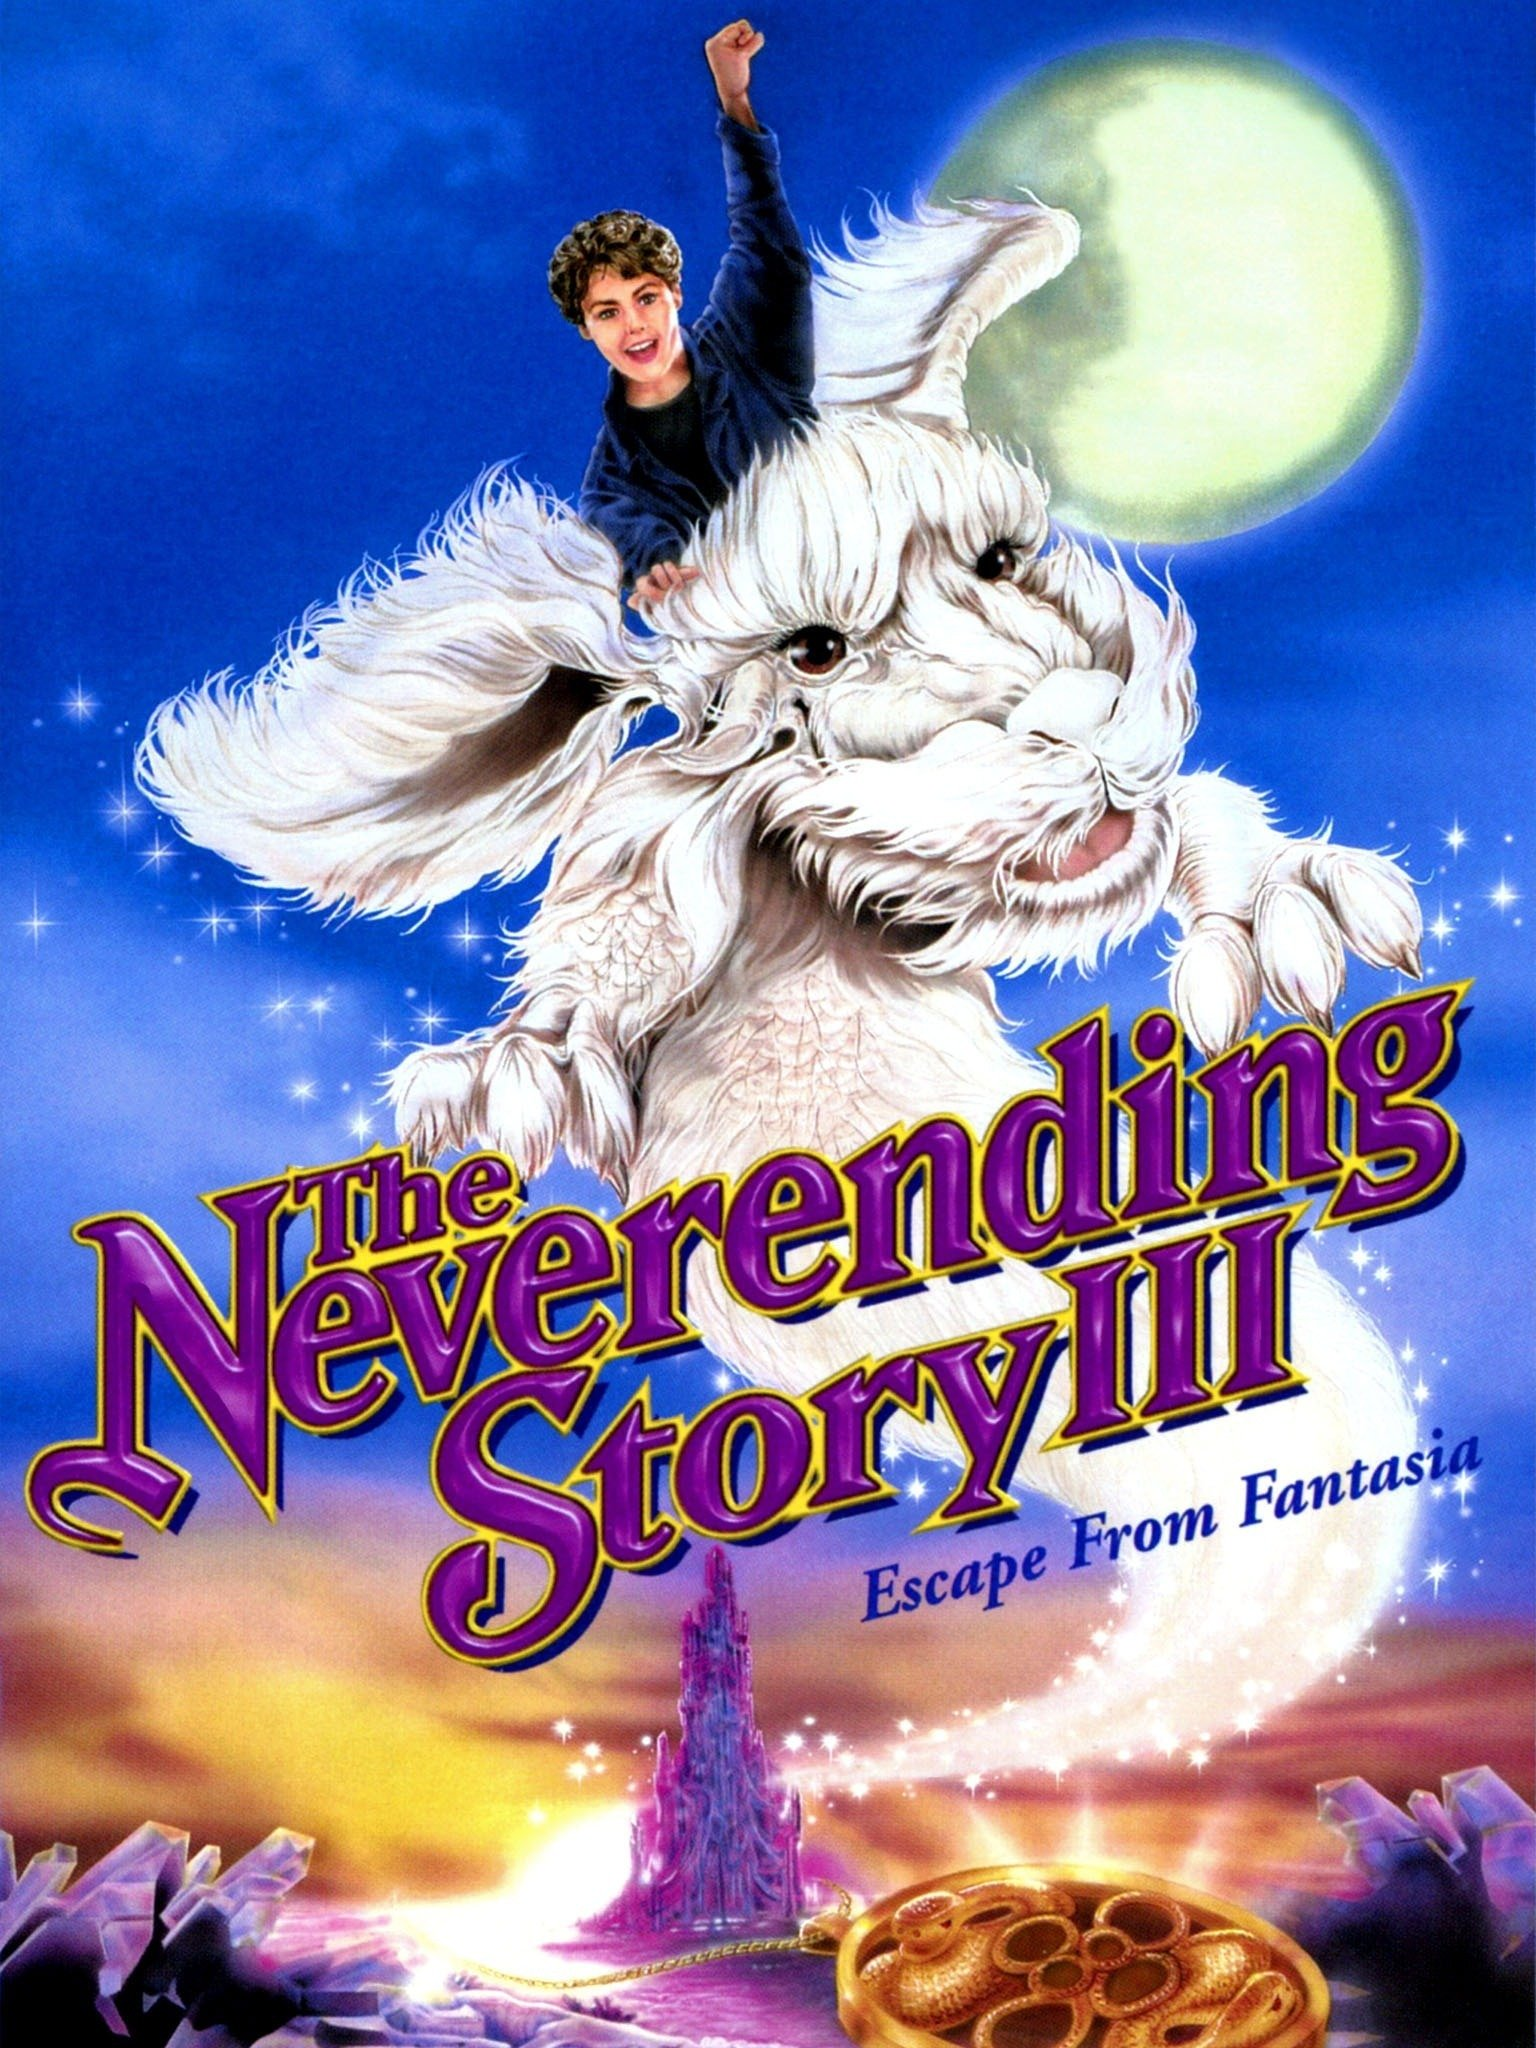 Histoire Sans Fin Streaming : histoire, streaming, Neverending, Story, Escape, Fantasia, (1994), Rotten, Tomatoes